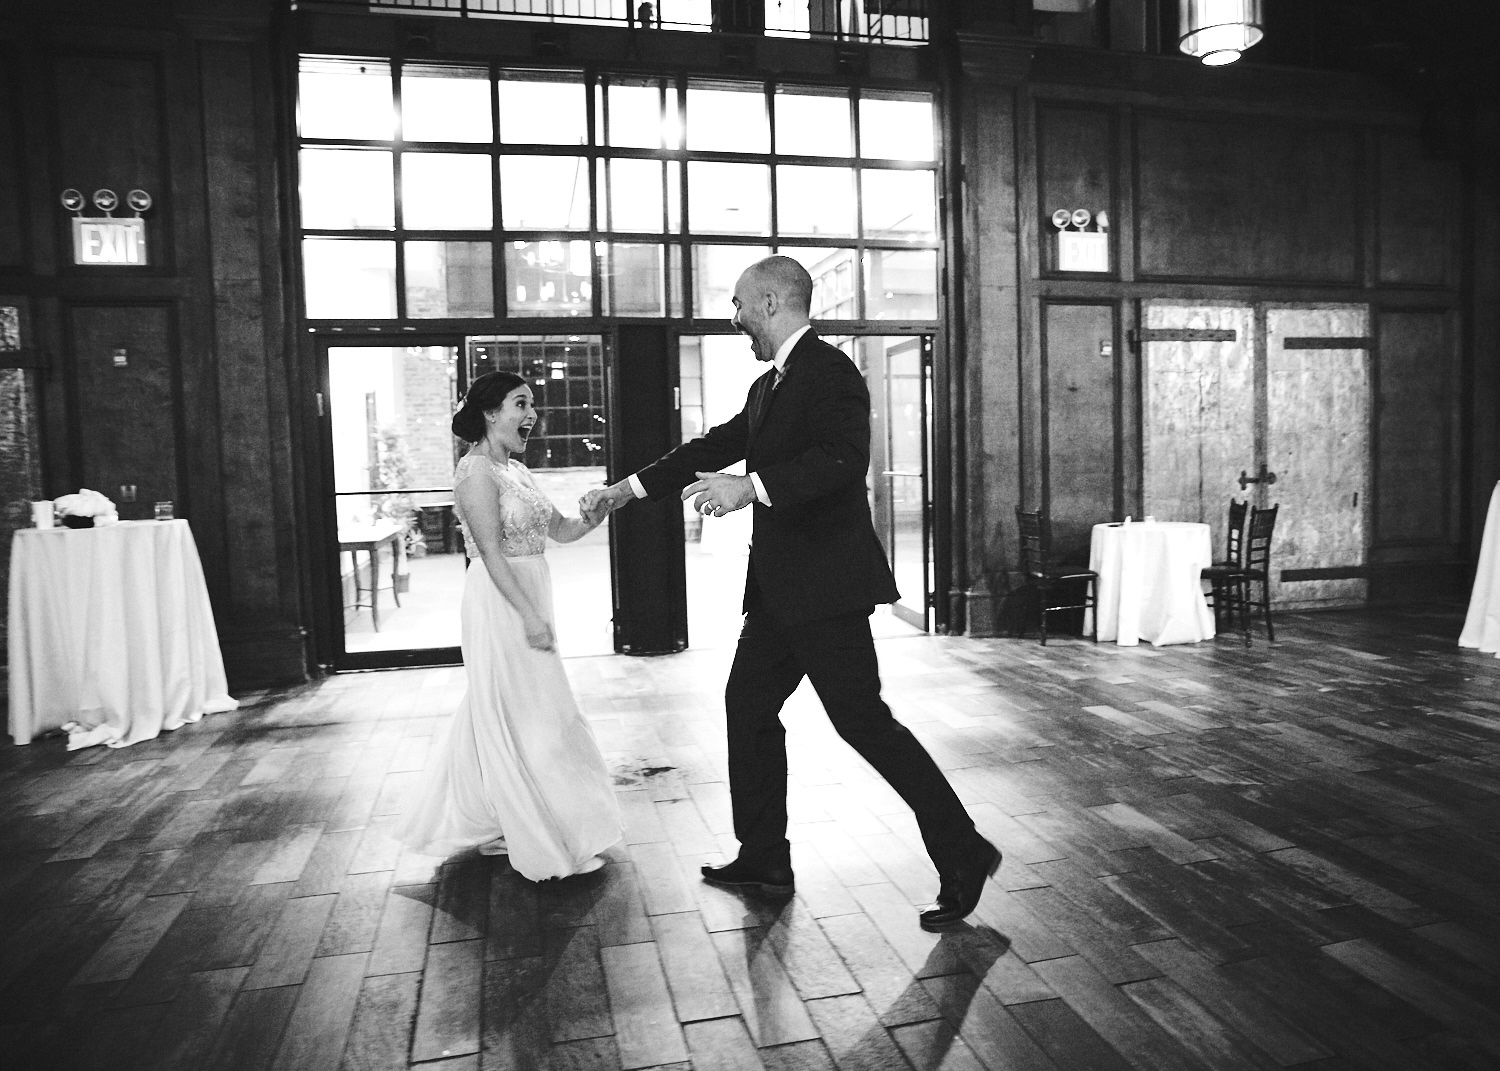 161022_A&B_26BridgeStWedding_By_BriJohnsonWeddings_0069.jpg